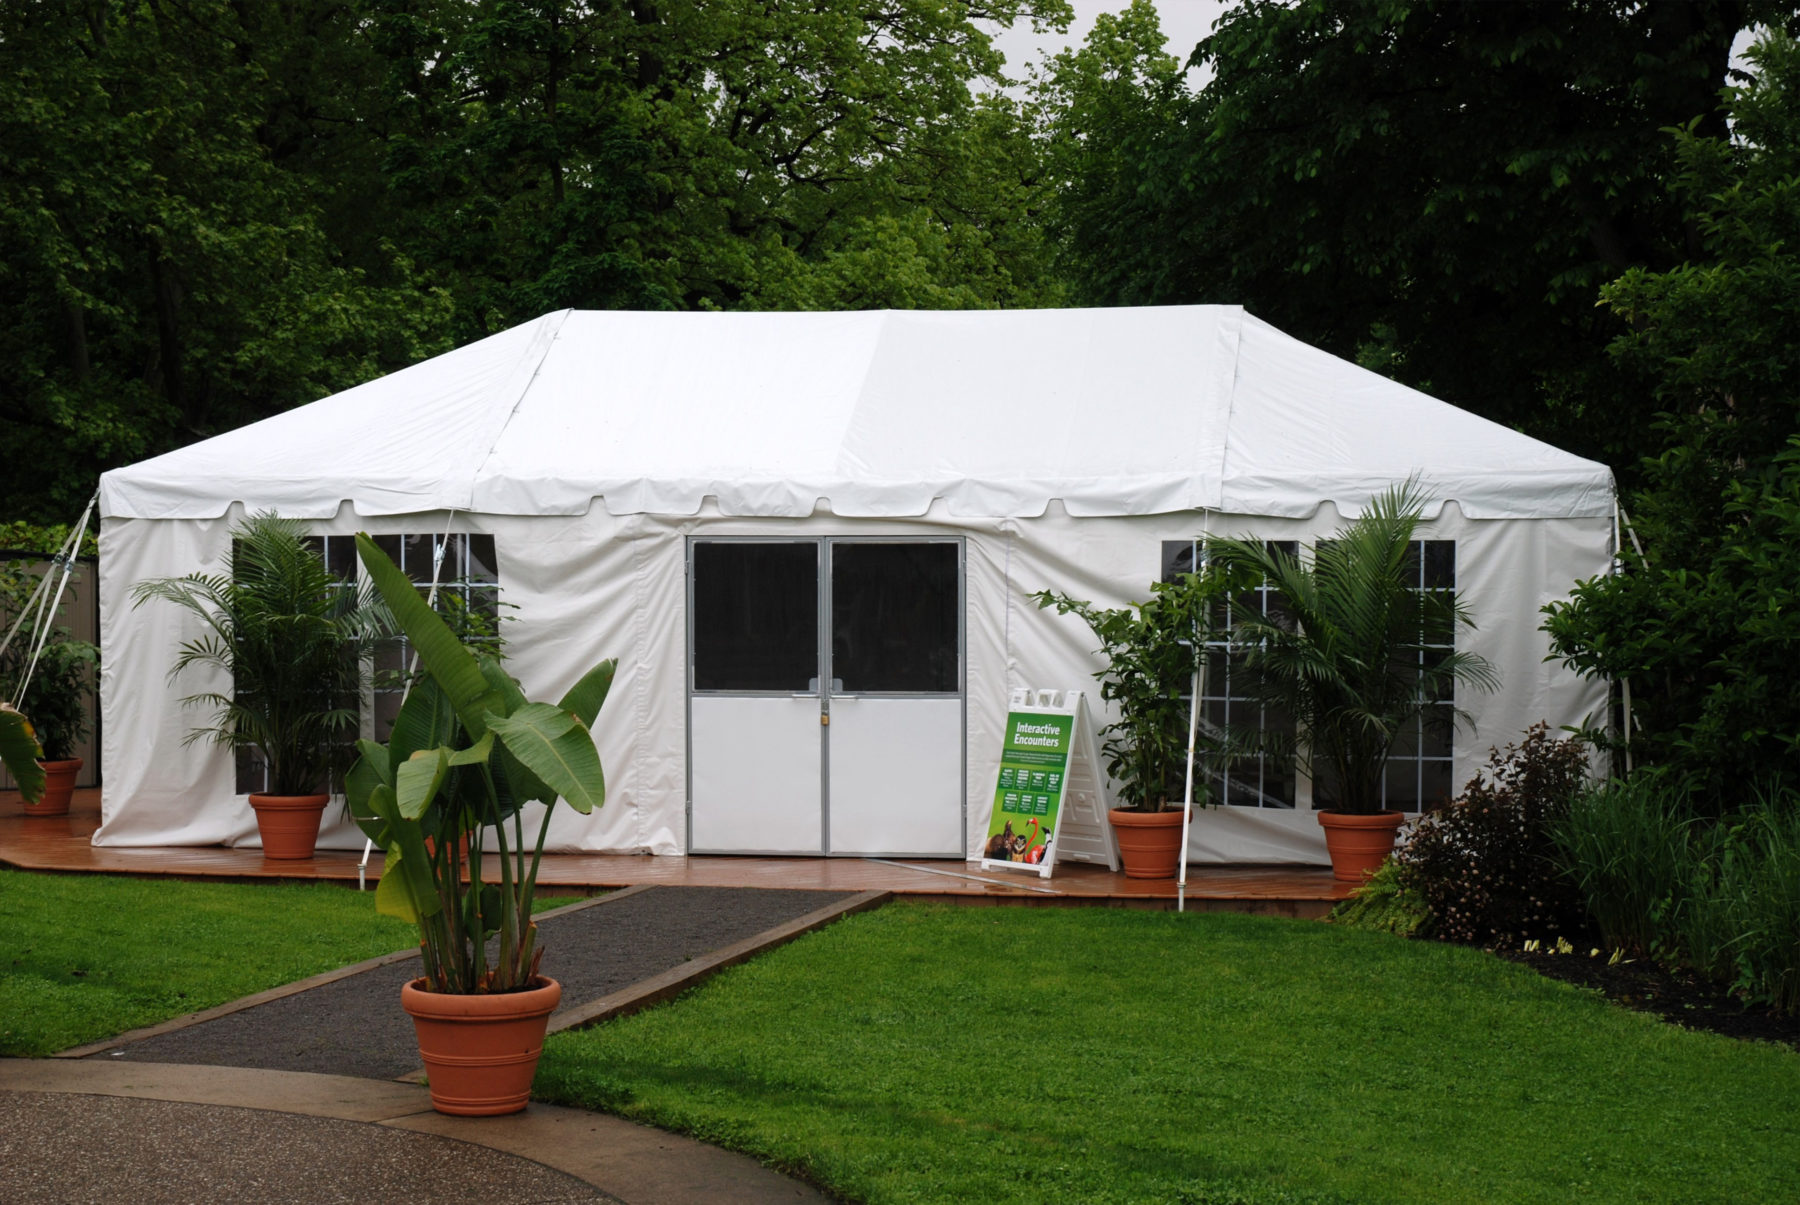 National Aviary Pittsburgh PA & New u0026 Used Tent Sales | PartySavvy Tent Professionals Pittsburgh PA